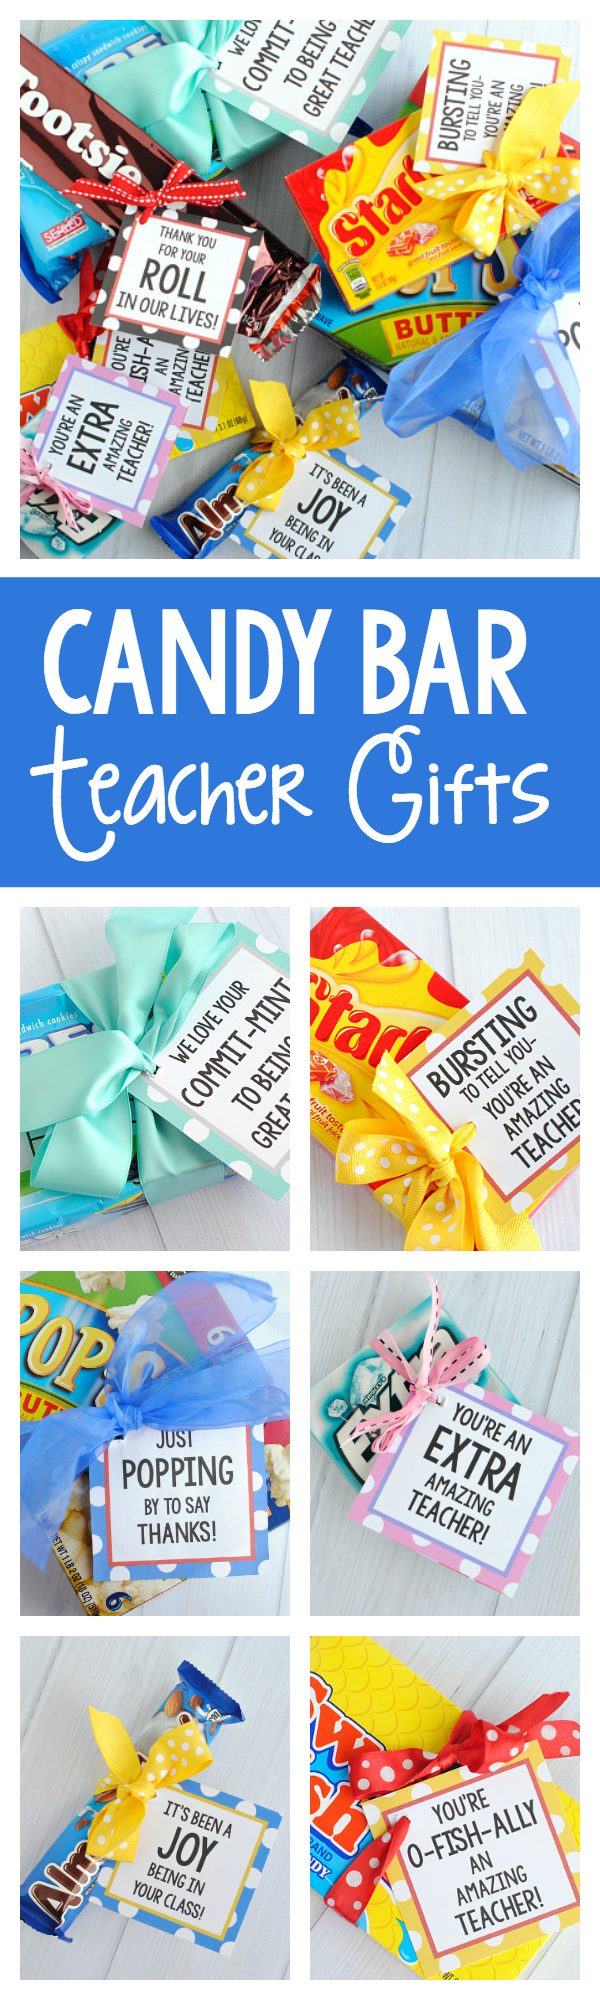 Teacher Appreciation Gifts-Candy Bar Gift Tags to Say Thank You to Your Teacher #teacherappreciation #teacherappreciationgifts #teacherappreciationweekideas #teacherappreciationweek